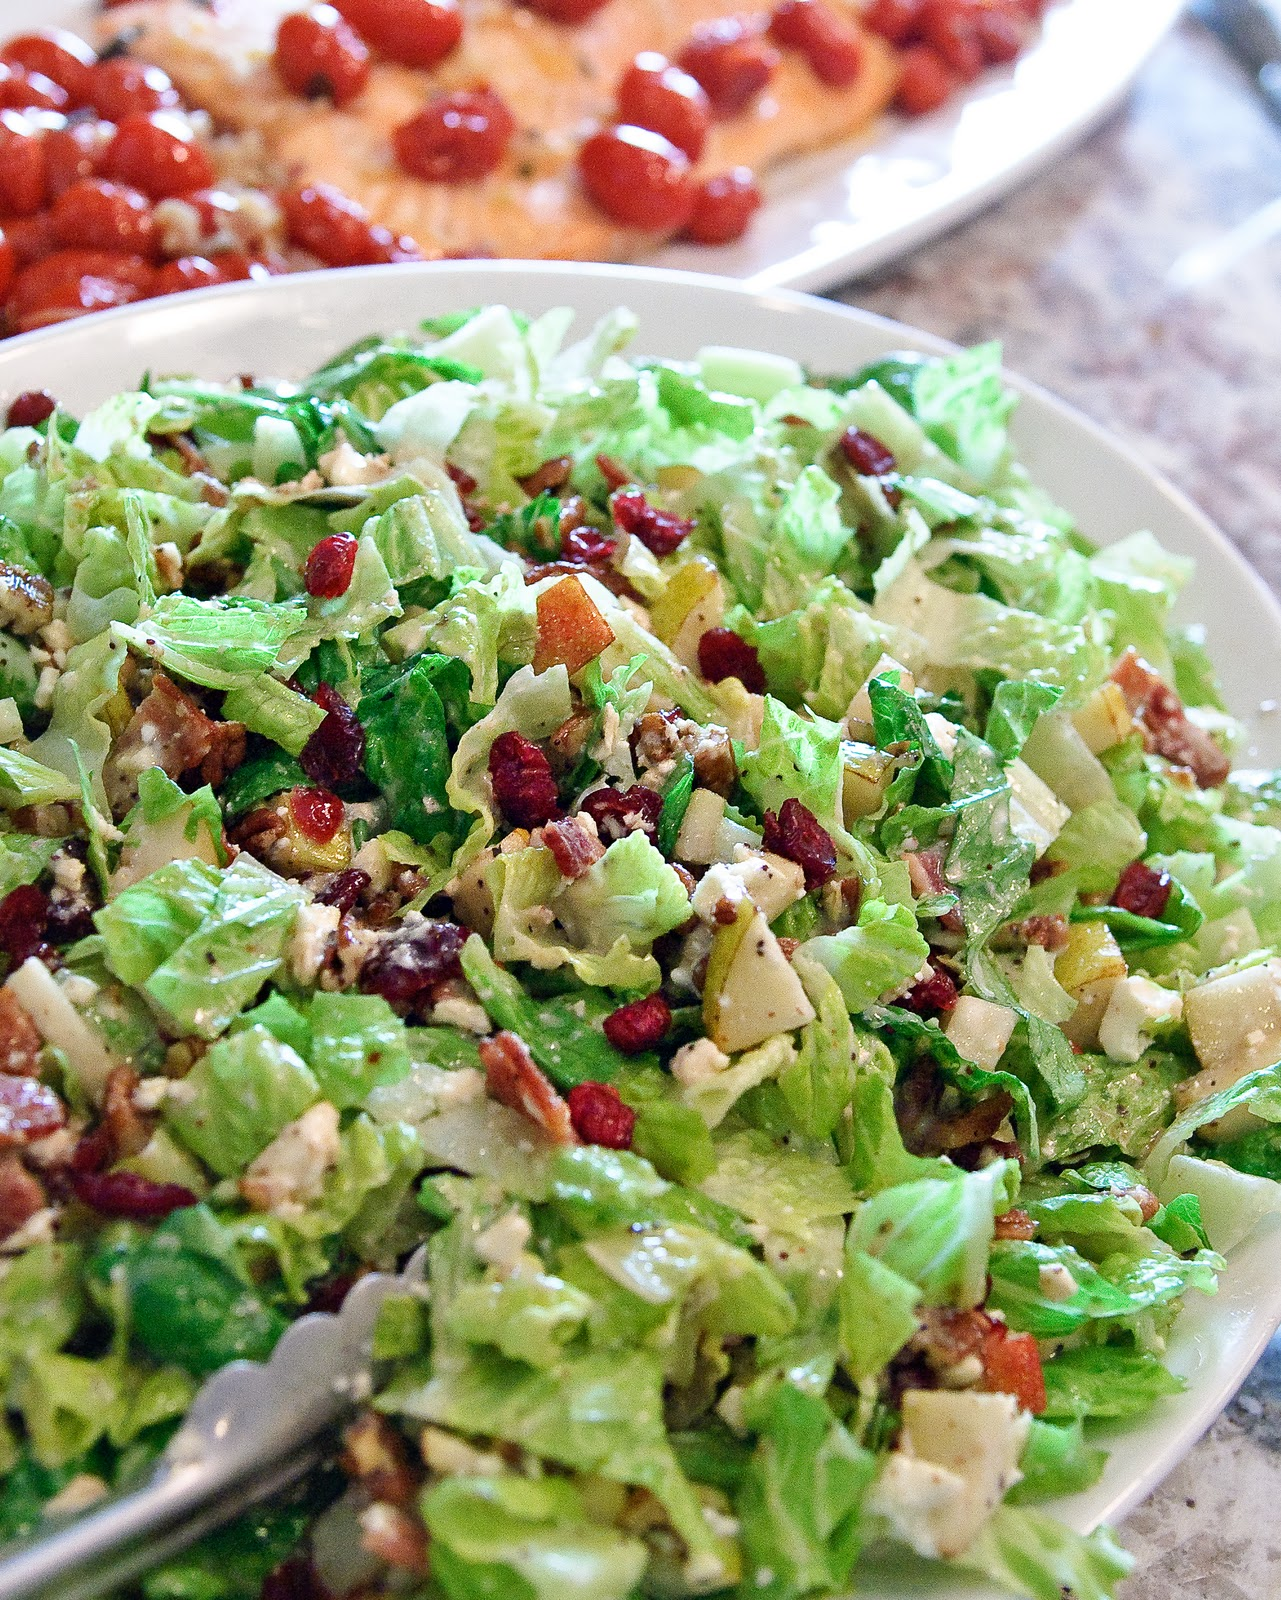 Autumn Chopped Salad With Pears, Cranberries, Pecans, Bacon, And Feta